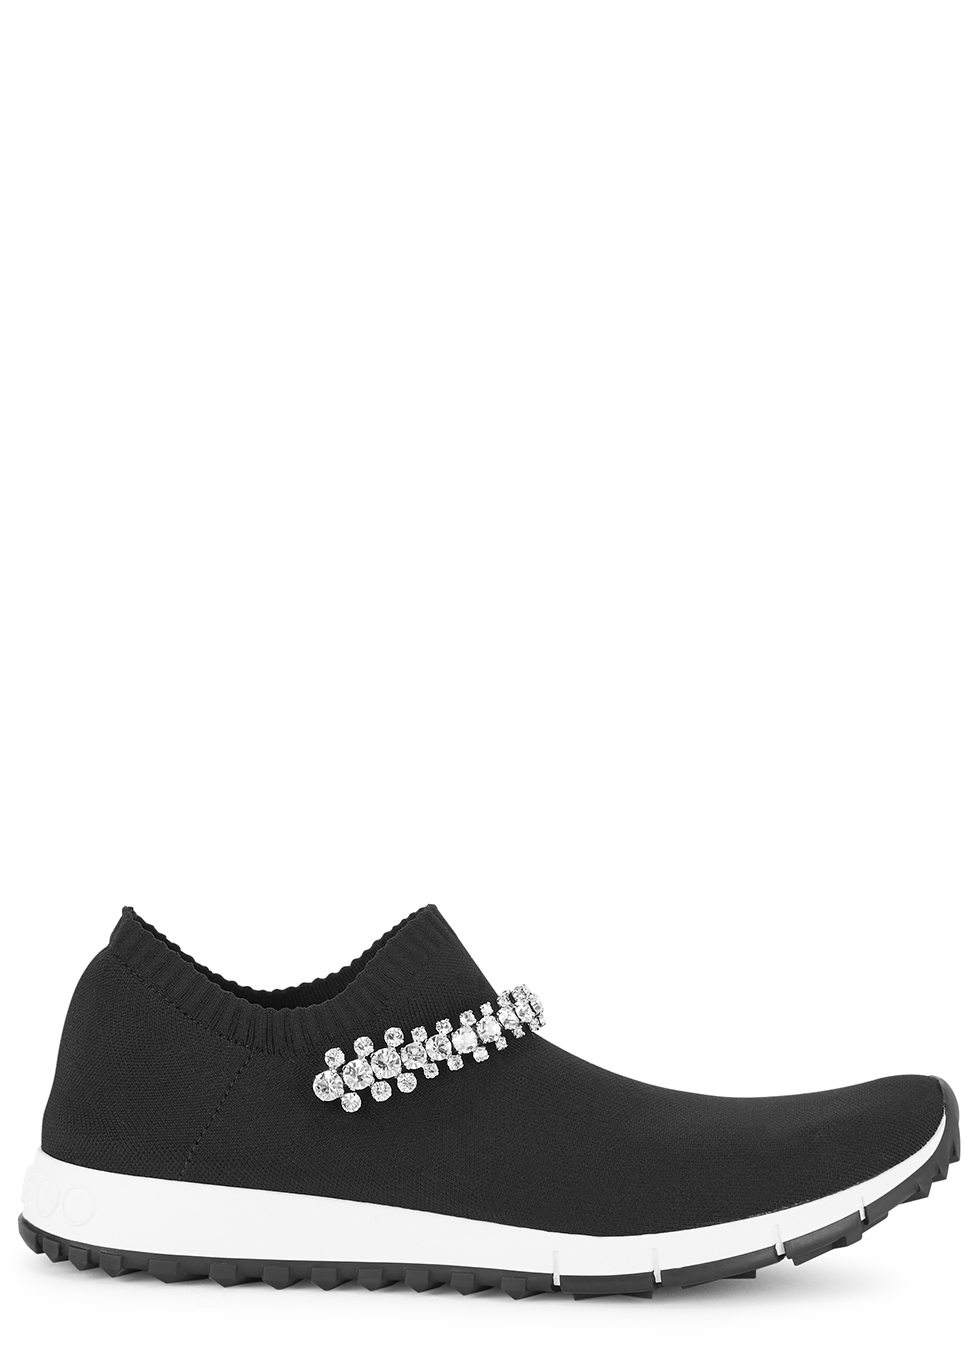 Verona crystal-embellished stretch-knit sneakers